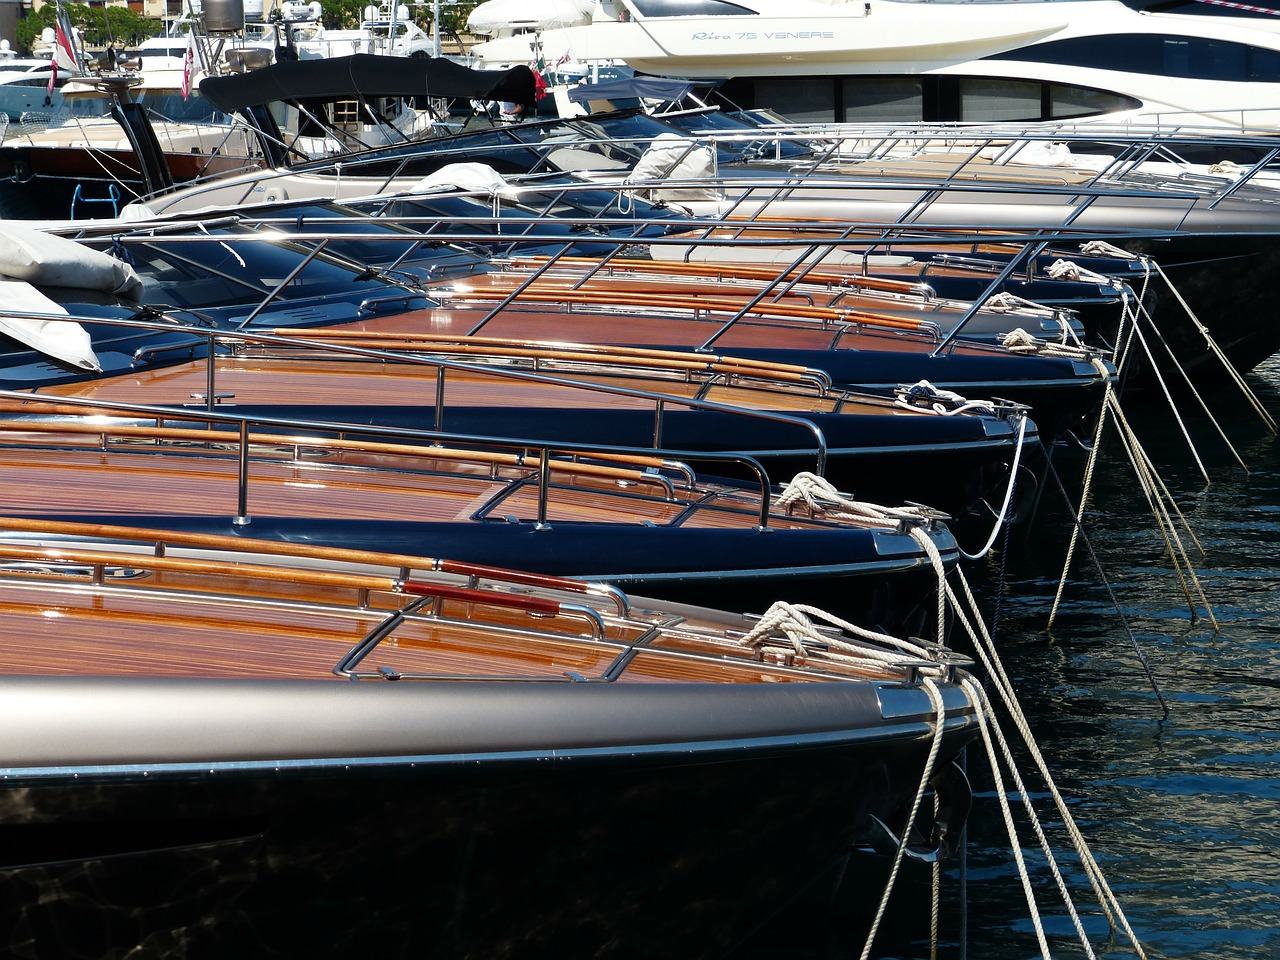 boats yachts anchorage free photo